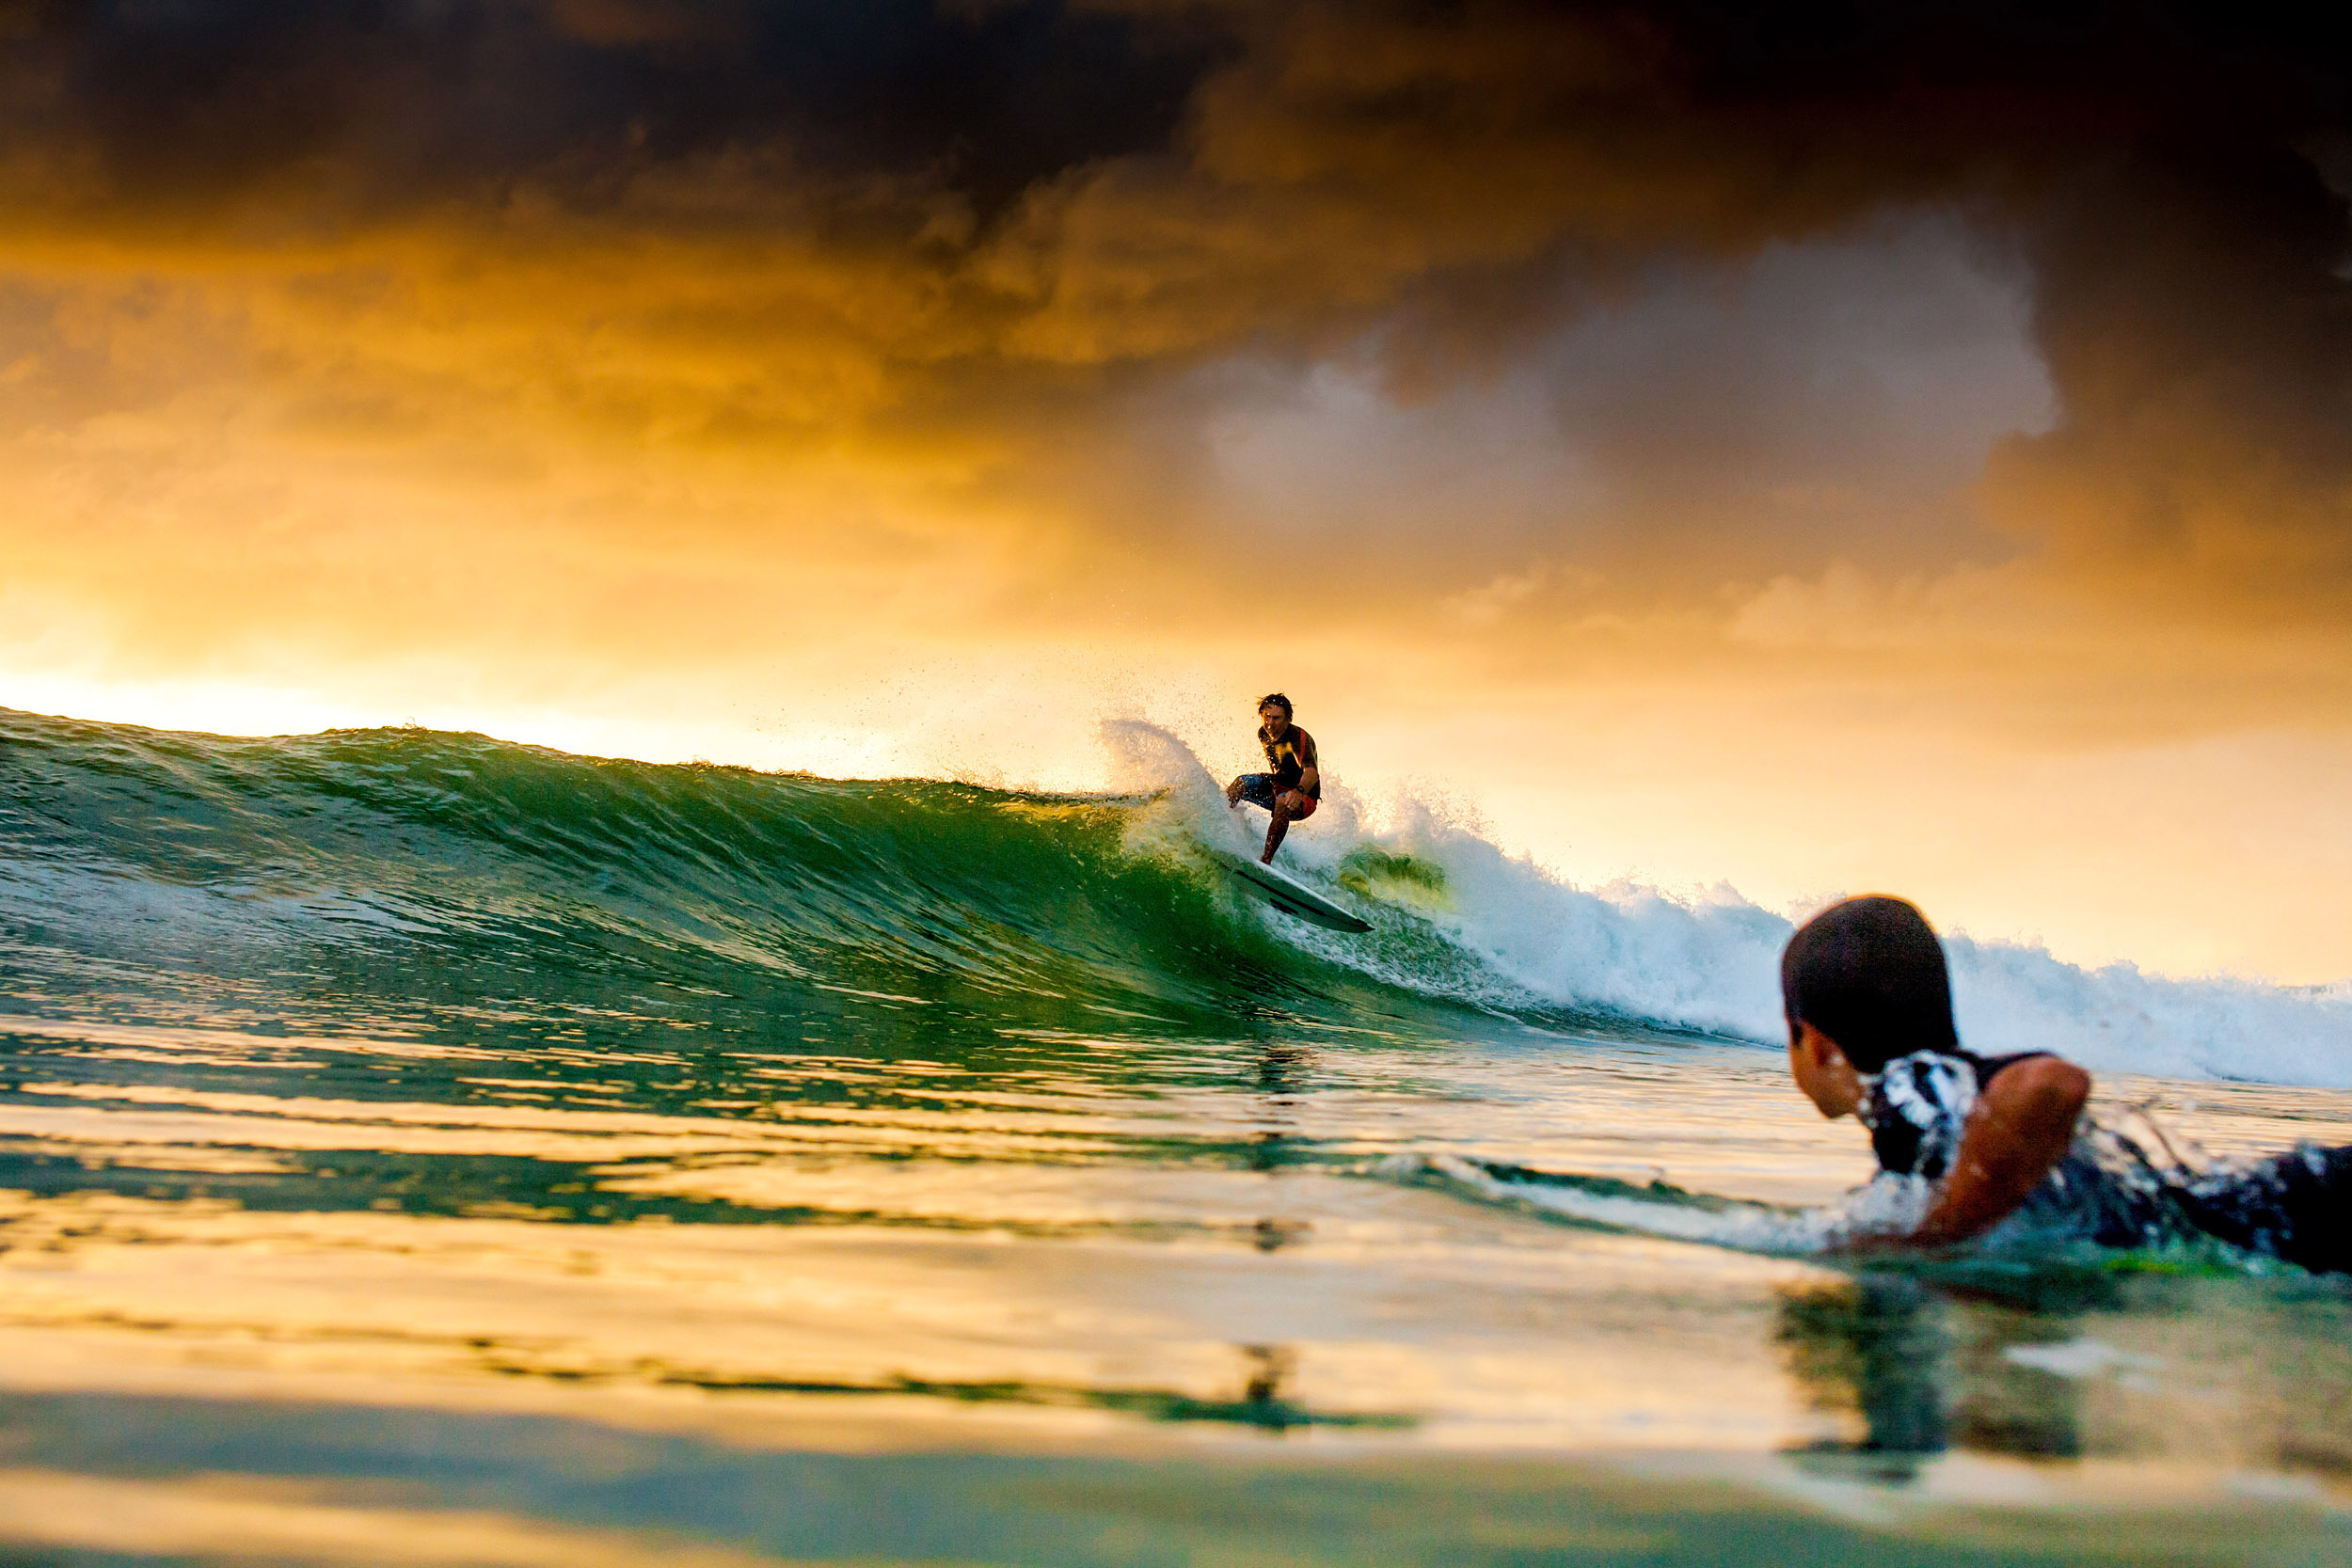 father-and-son-surfing-sunrise-S1289-377.jpg